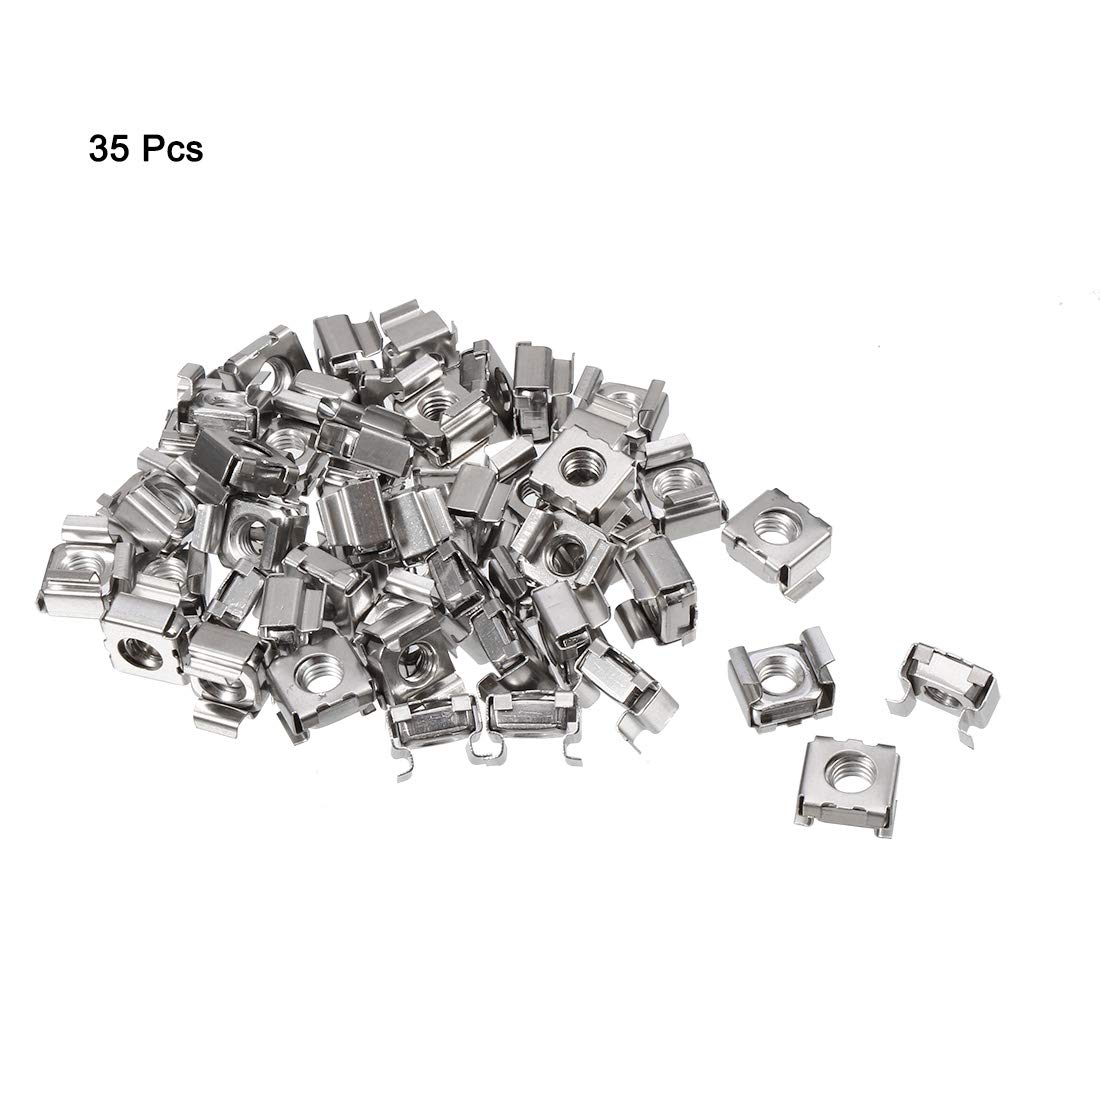 uxcell/® M6 x 1mm 304 Stainless Steel Nylock Nylon Insert Hex Lock Nuts 50pcs